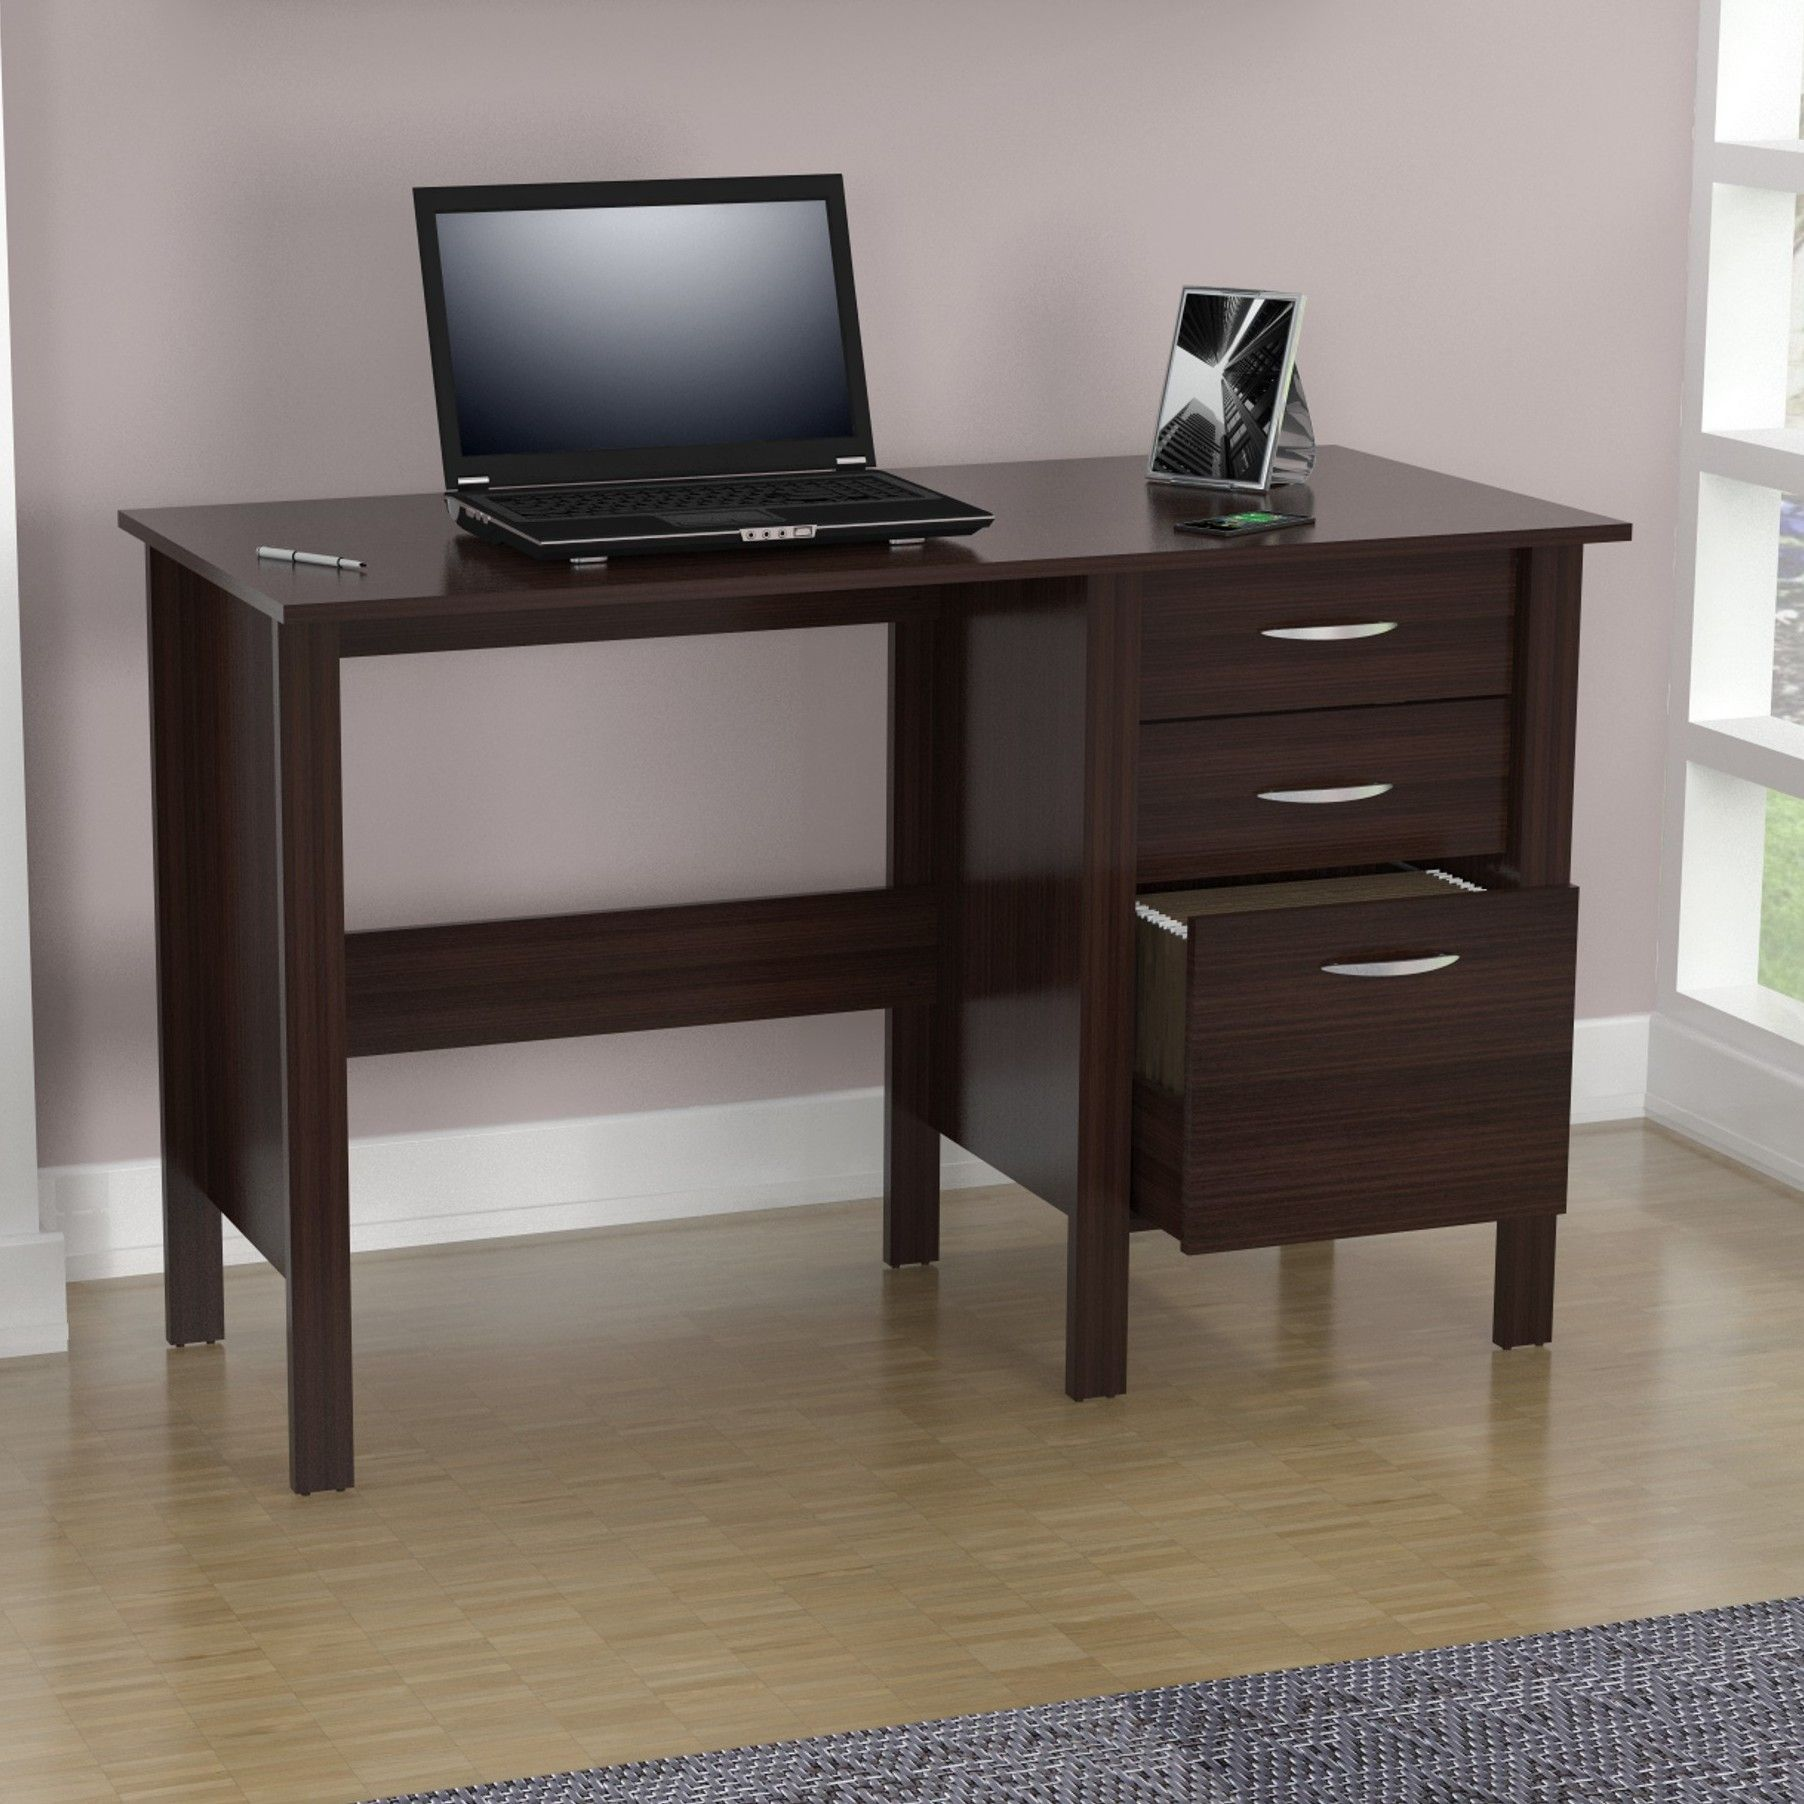 pdp wayfair with reviews ca furniture design zipcode annie writing hutch desk